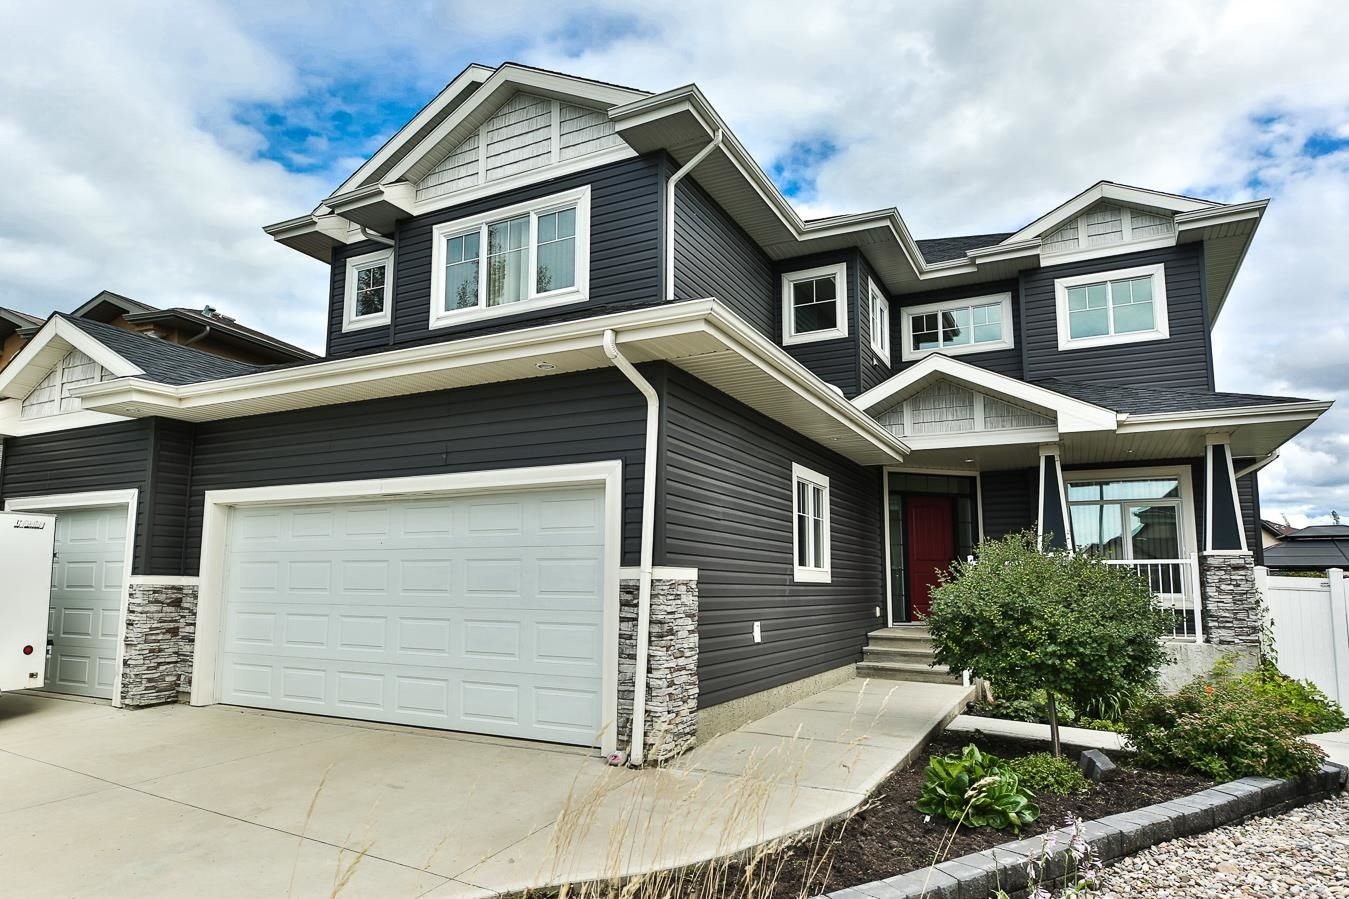 Main Photo: 155 FRASER Way NW in Edmonton: Zone 35 House for sale : MLS®# E4266277